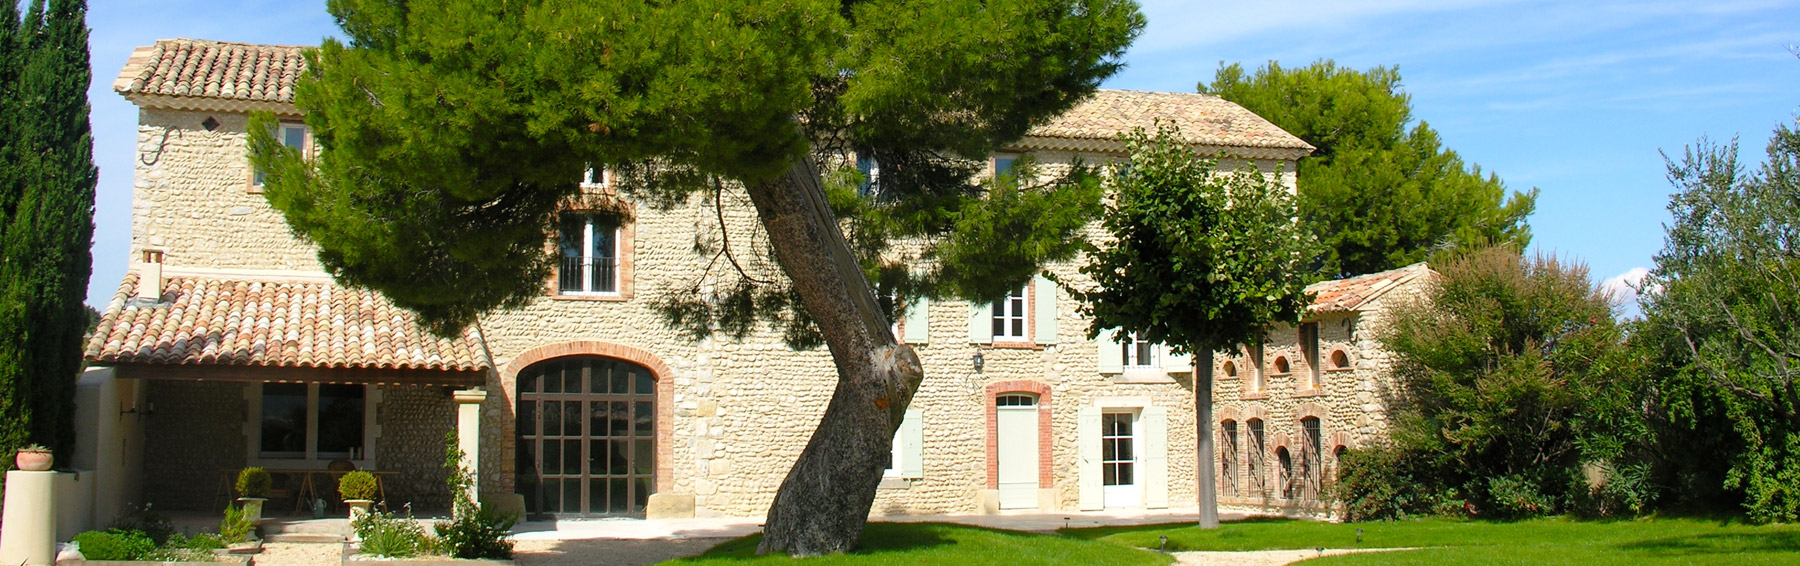 real estate vaucluse provence